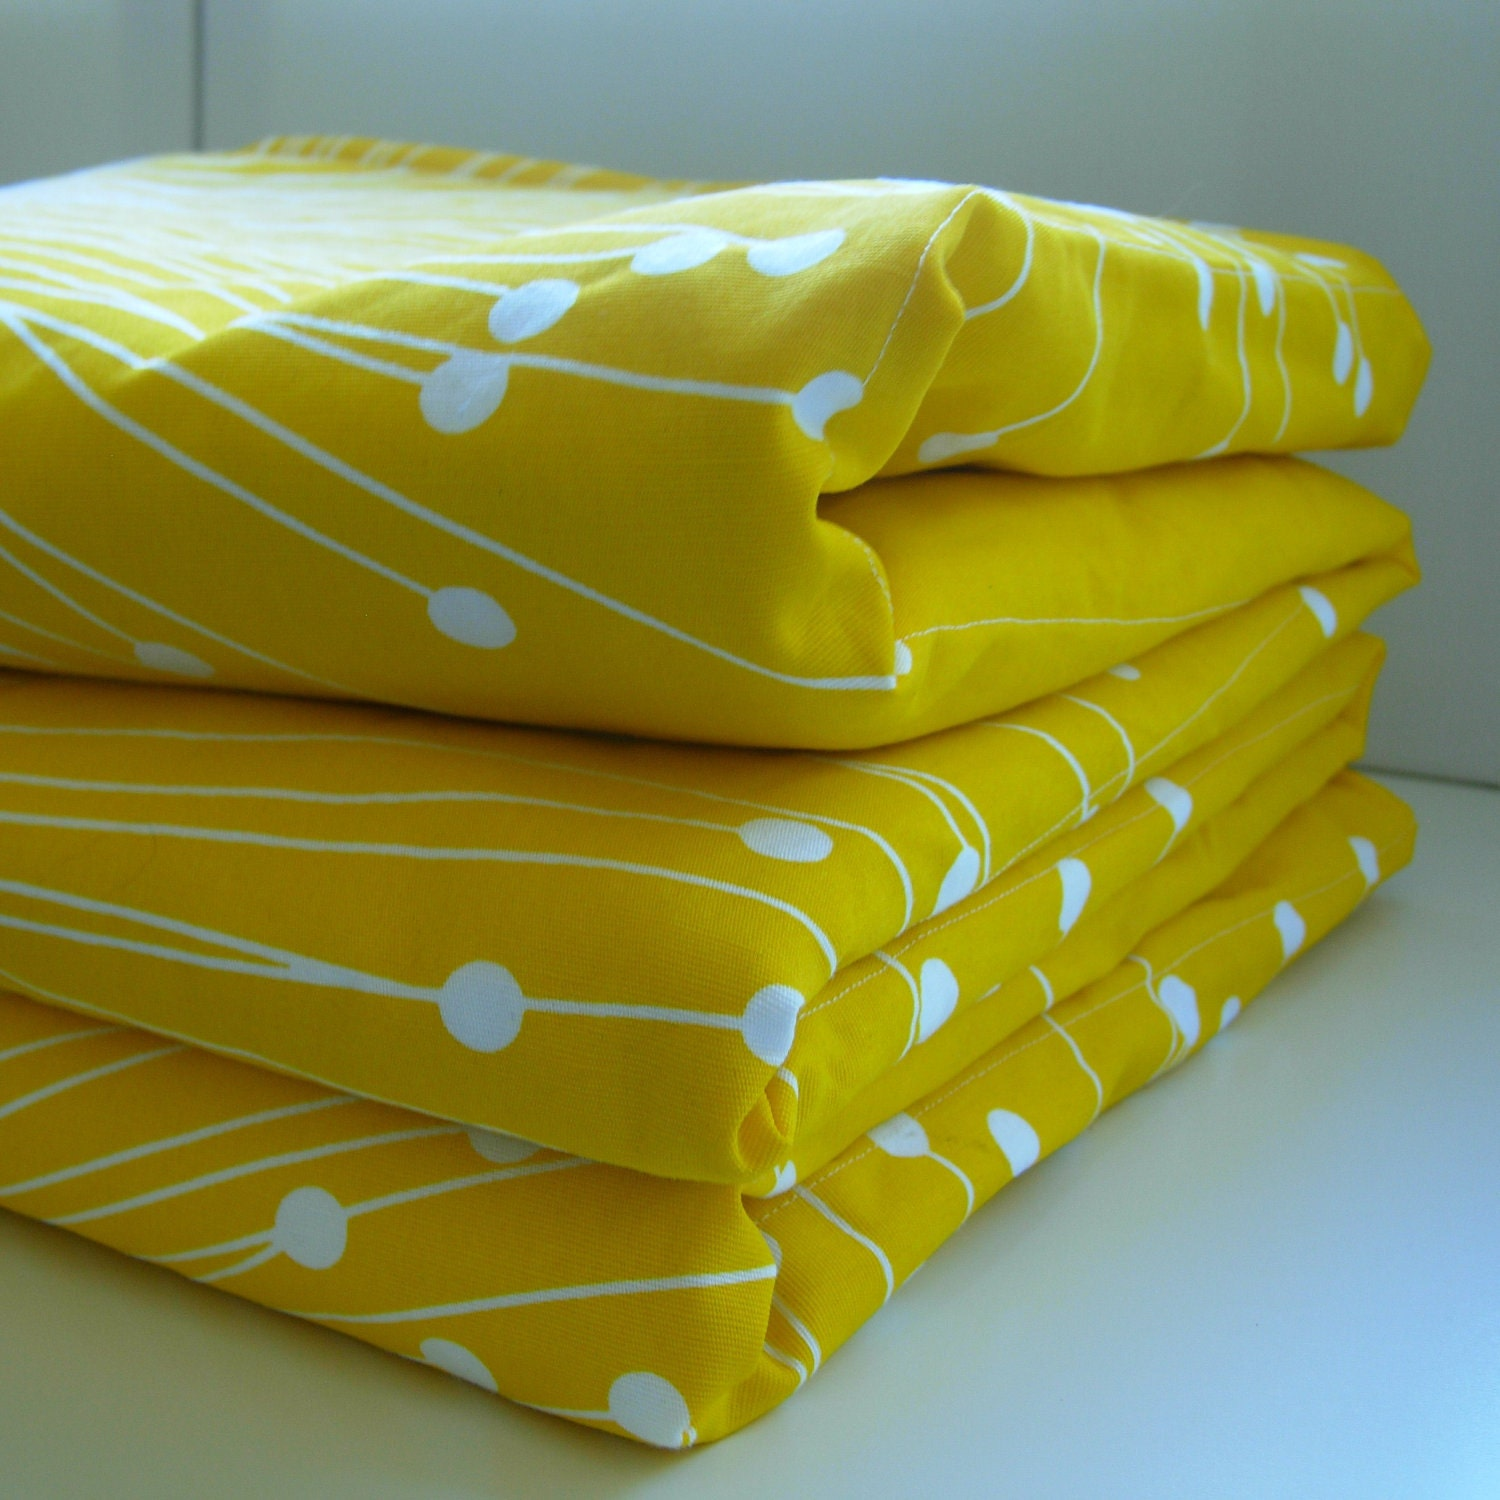 Buckwheat Hull Mattress Topper Play Mat, in Reversible Modern Owl and Chevron Design Last One at $45